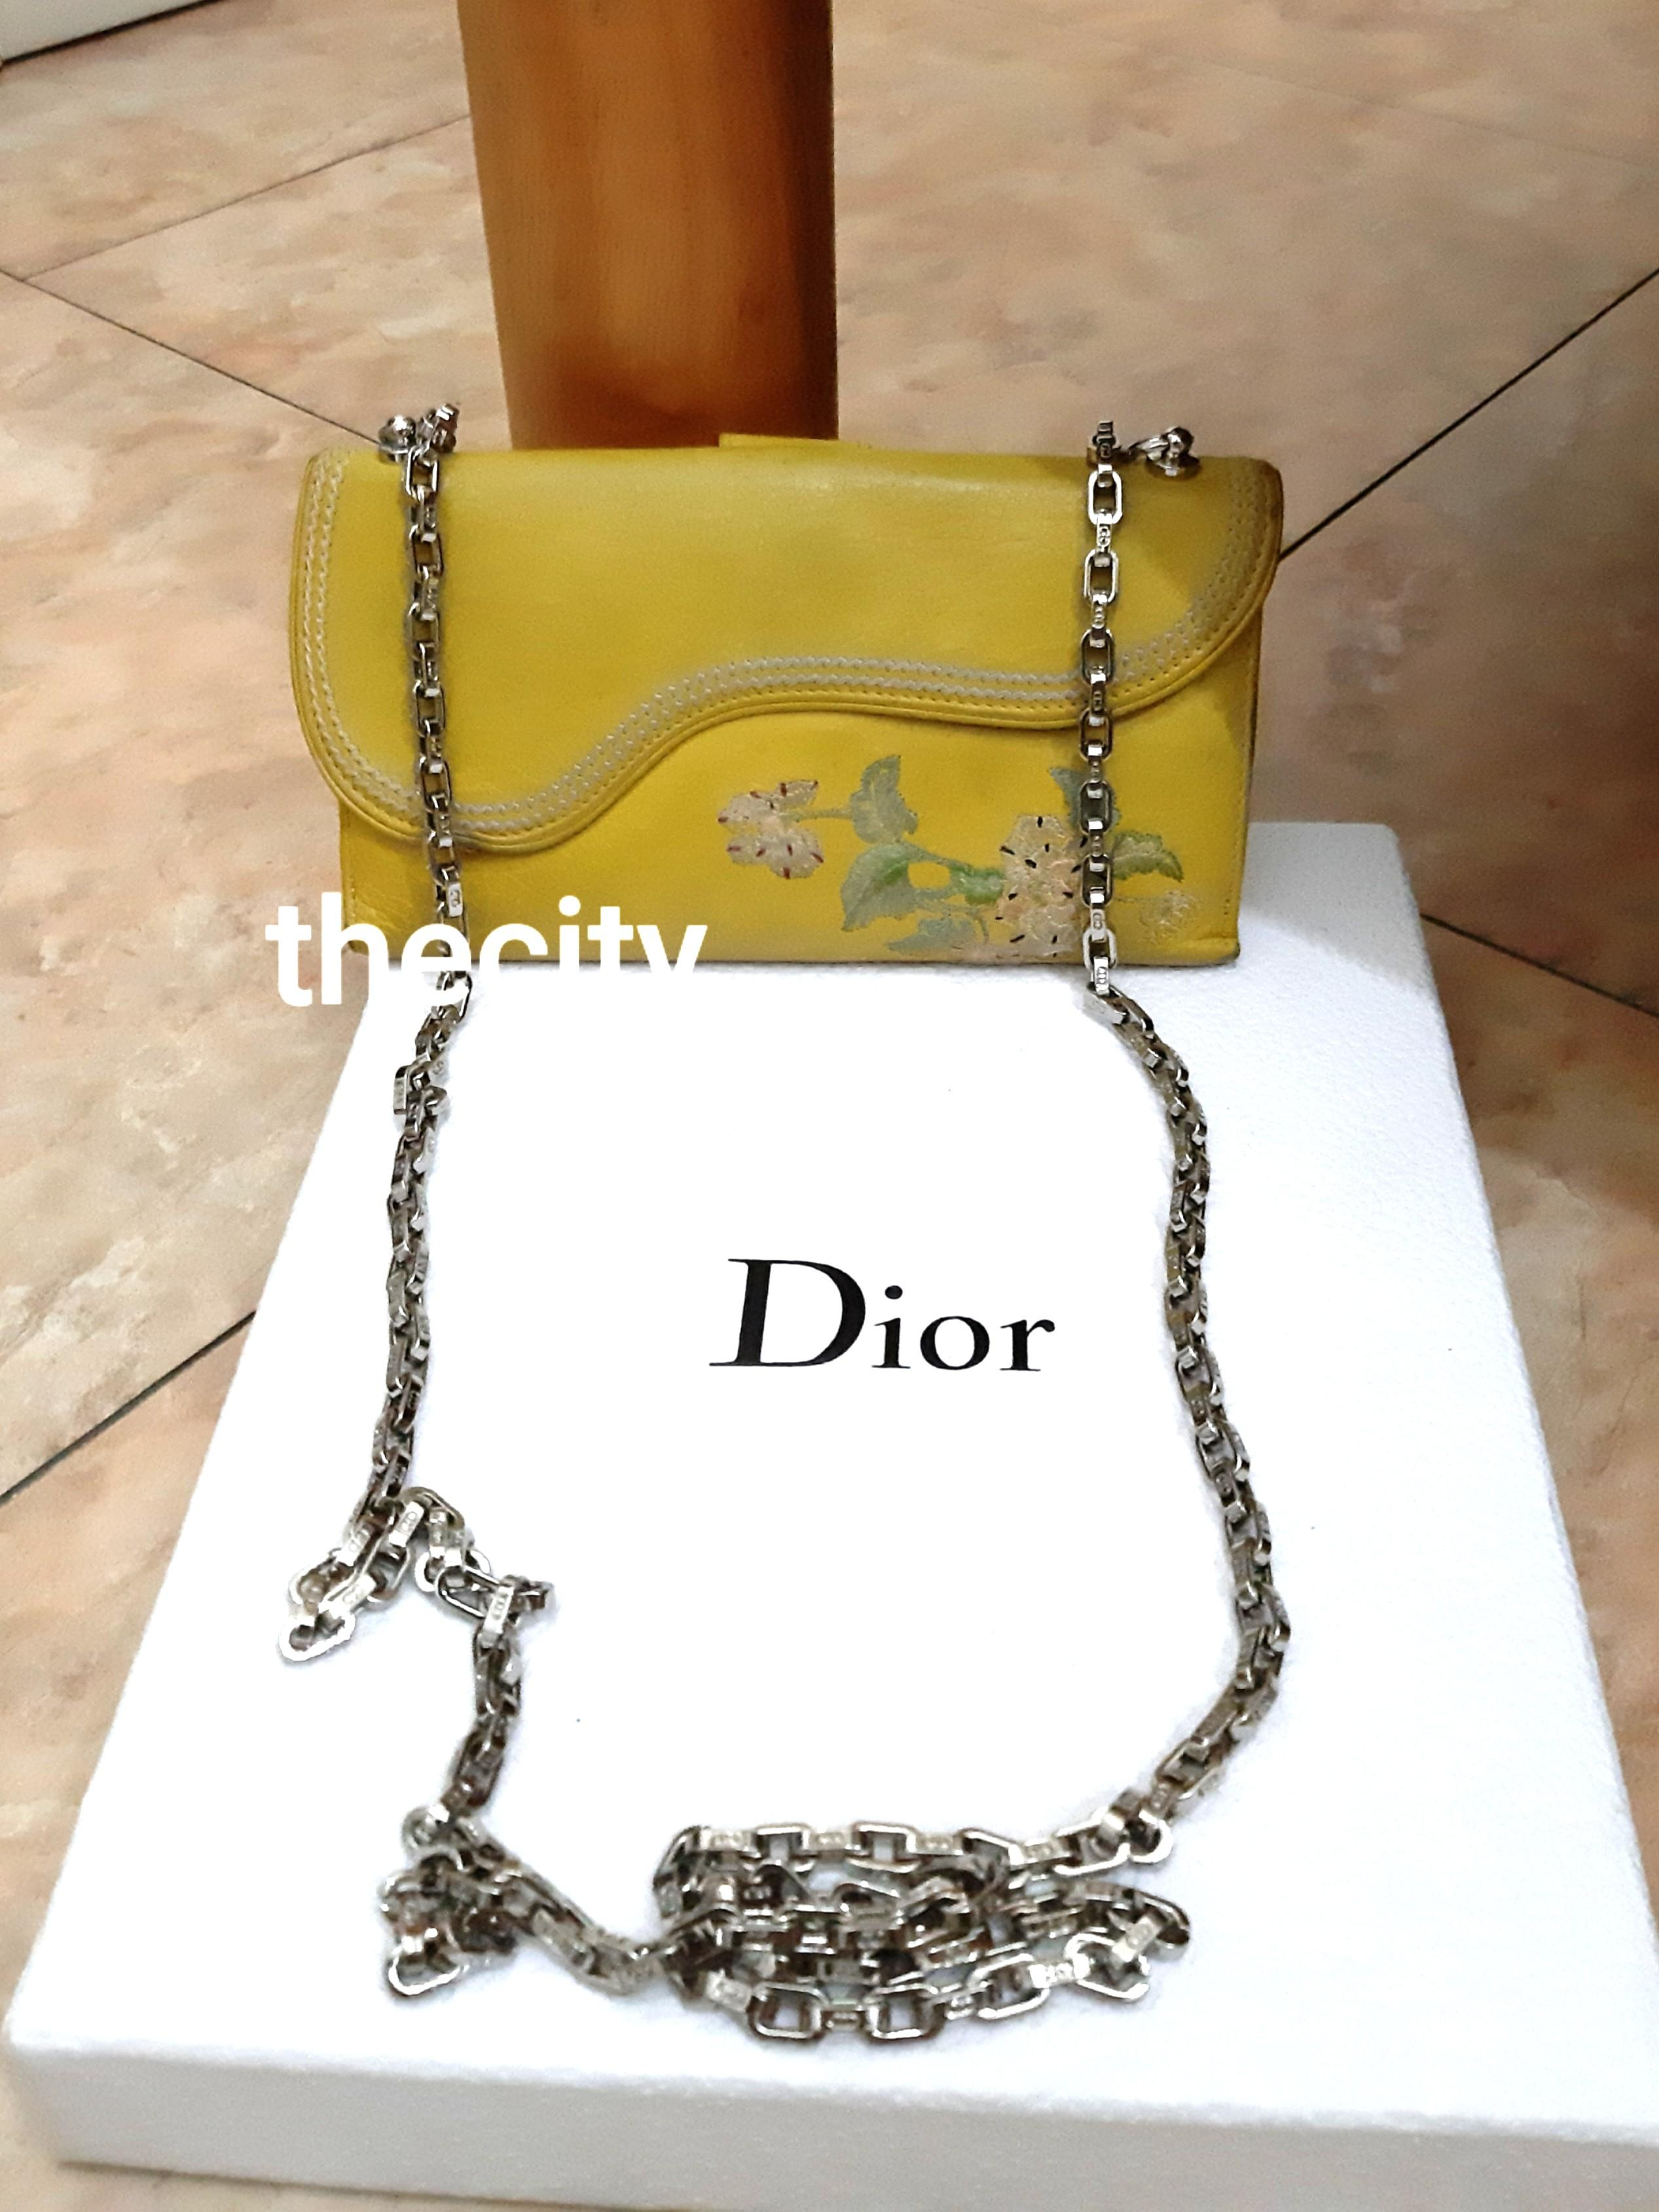 AUTHENTIC DIOR SADDLE ,  FLOWER DESIGN  WALLET - SILVER HARDWARE - OVERALL STILL GOOD - CLEAN POCKETS & INTERIOR - CLASSIC VINTAGE,  NOT FOR FUSSY BUYERS - COMES WITH EXTRA HOOKS & DIOR CHAIN STRAP FOR CROSSBODY SLING -